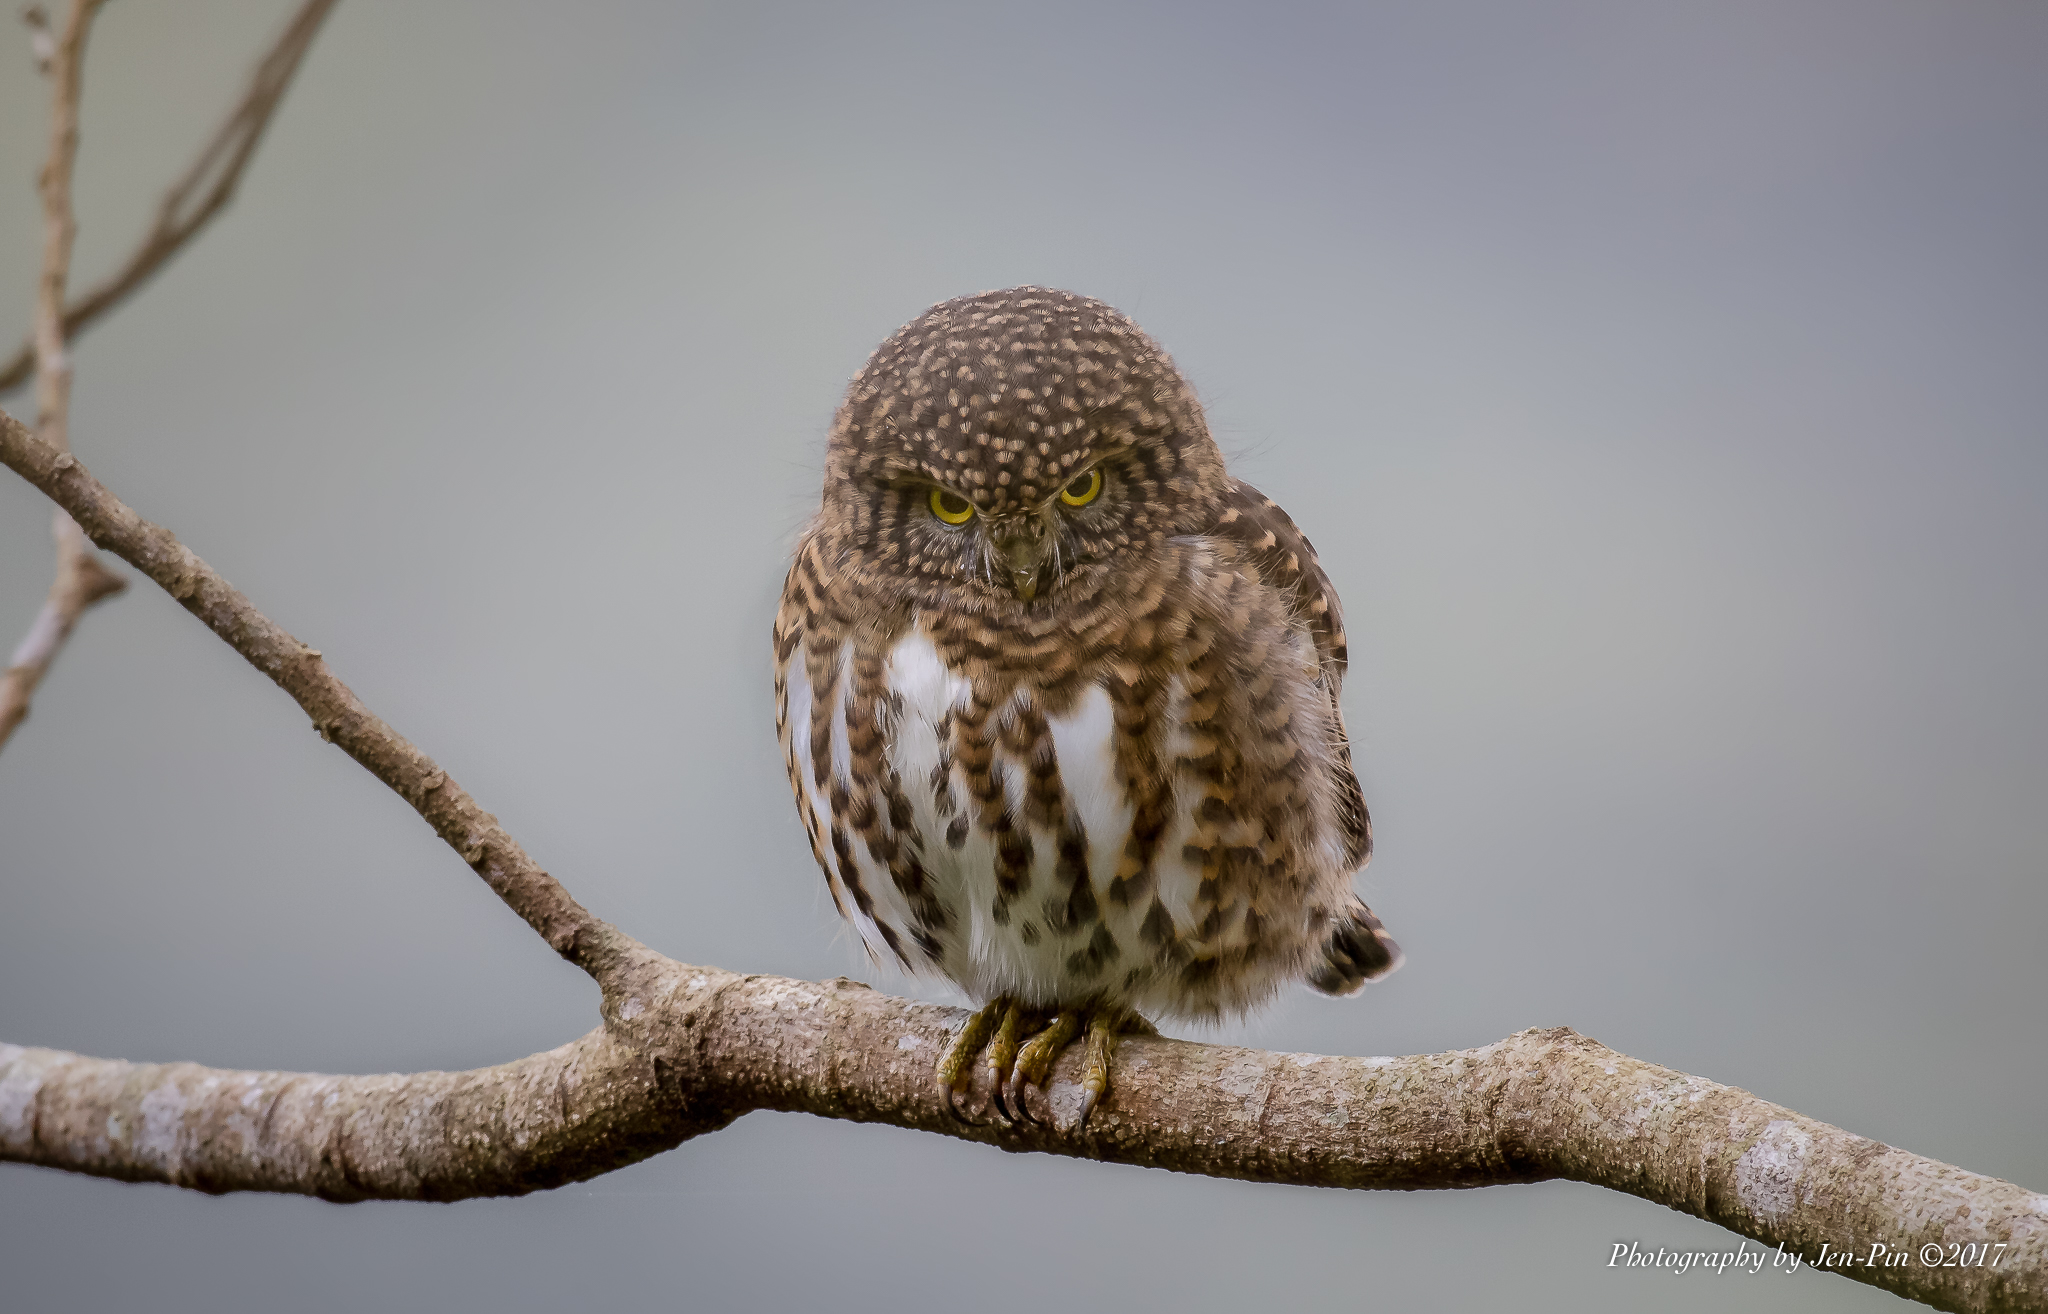 鵂鶹 Barred Owlet ©Photography Jen-Pin LIN 林仁斌